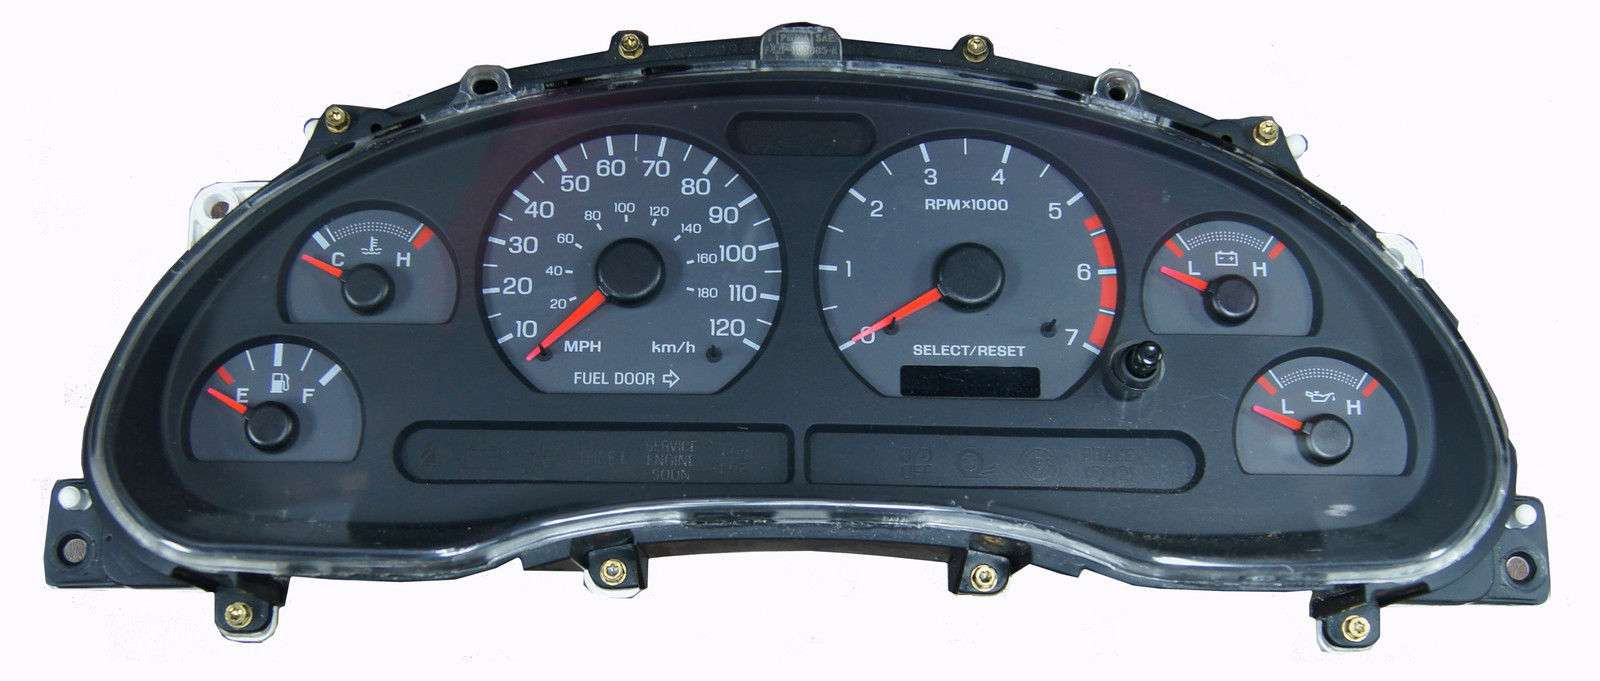 99 00 01 02 03 04 Ford Mustang Instrument Cluster Trip Odometer Repair Service For Sale